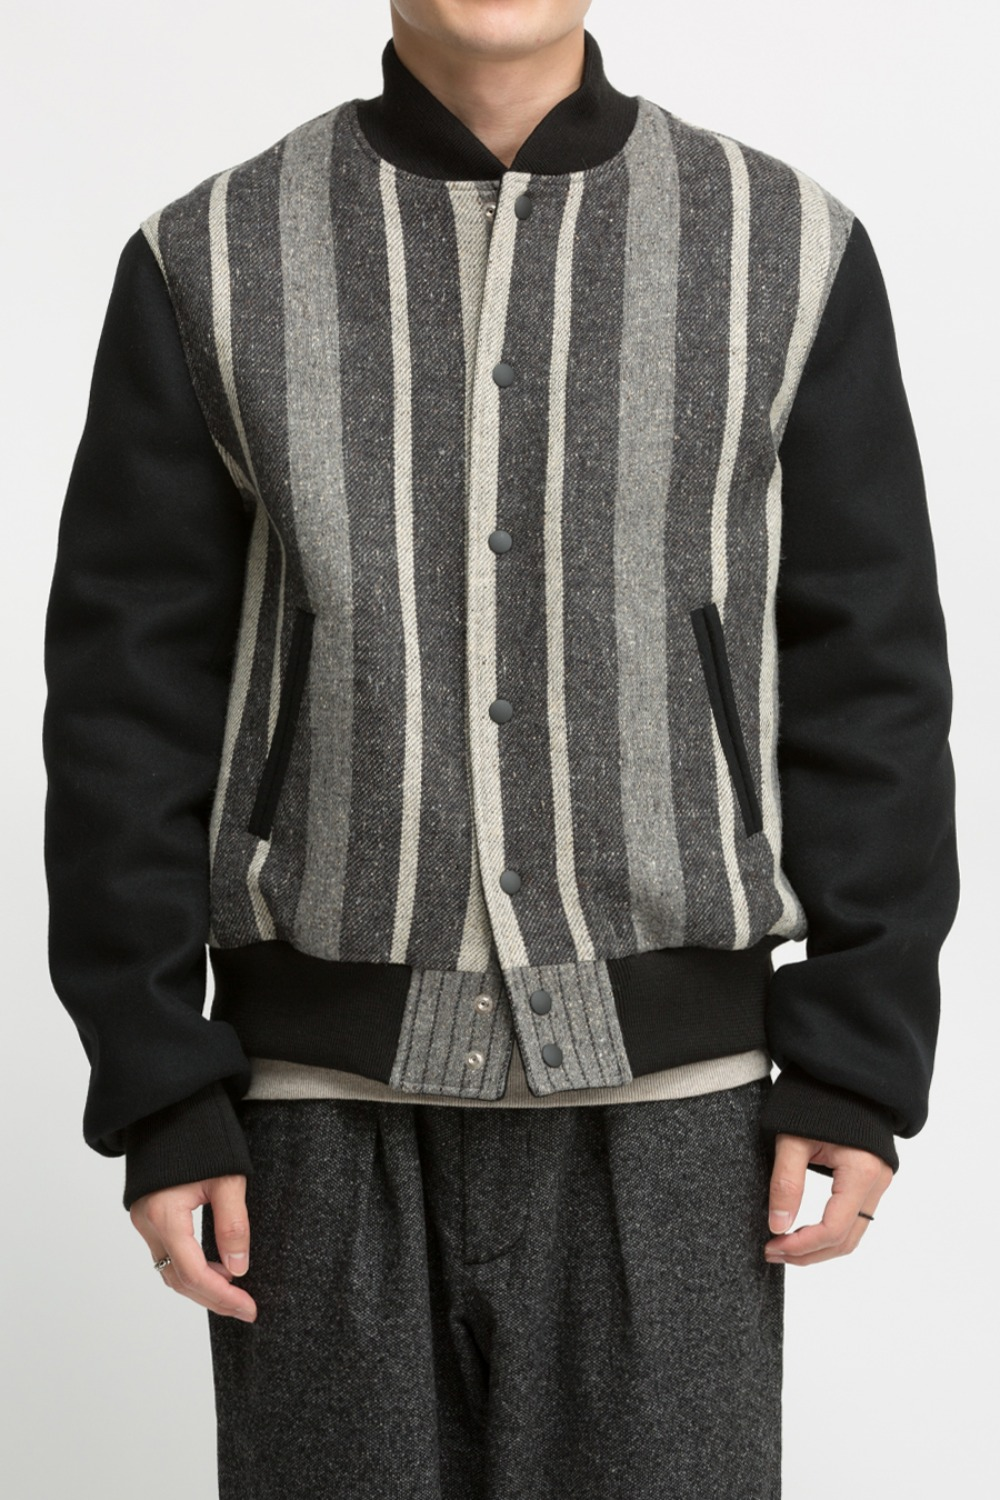 STRIPE VARSITY JACKET BLACK/GREY